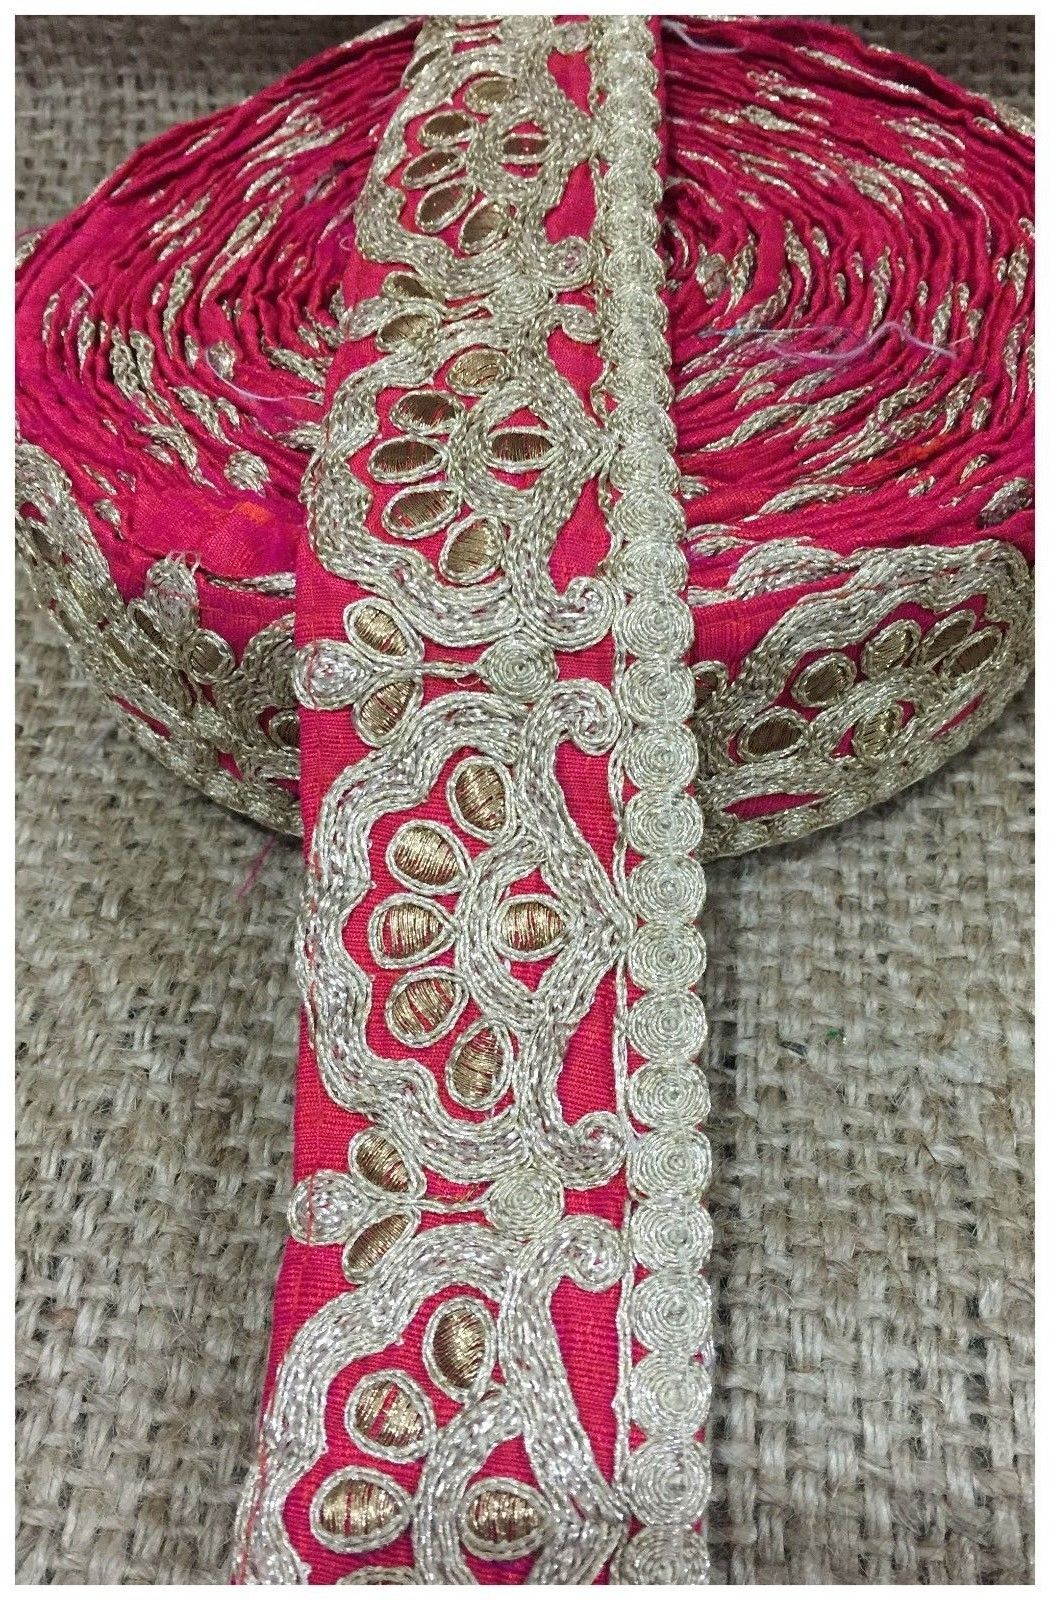 decorative trim for clothing beaded bridal trim by the yard Blue Copper Embroidered Cotton mix/ Slub Less than 3 inch